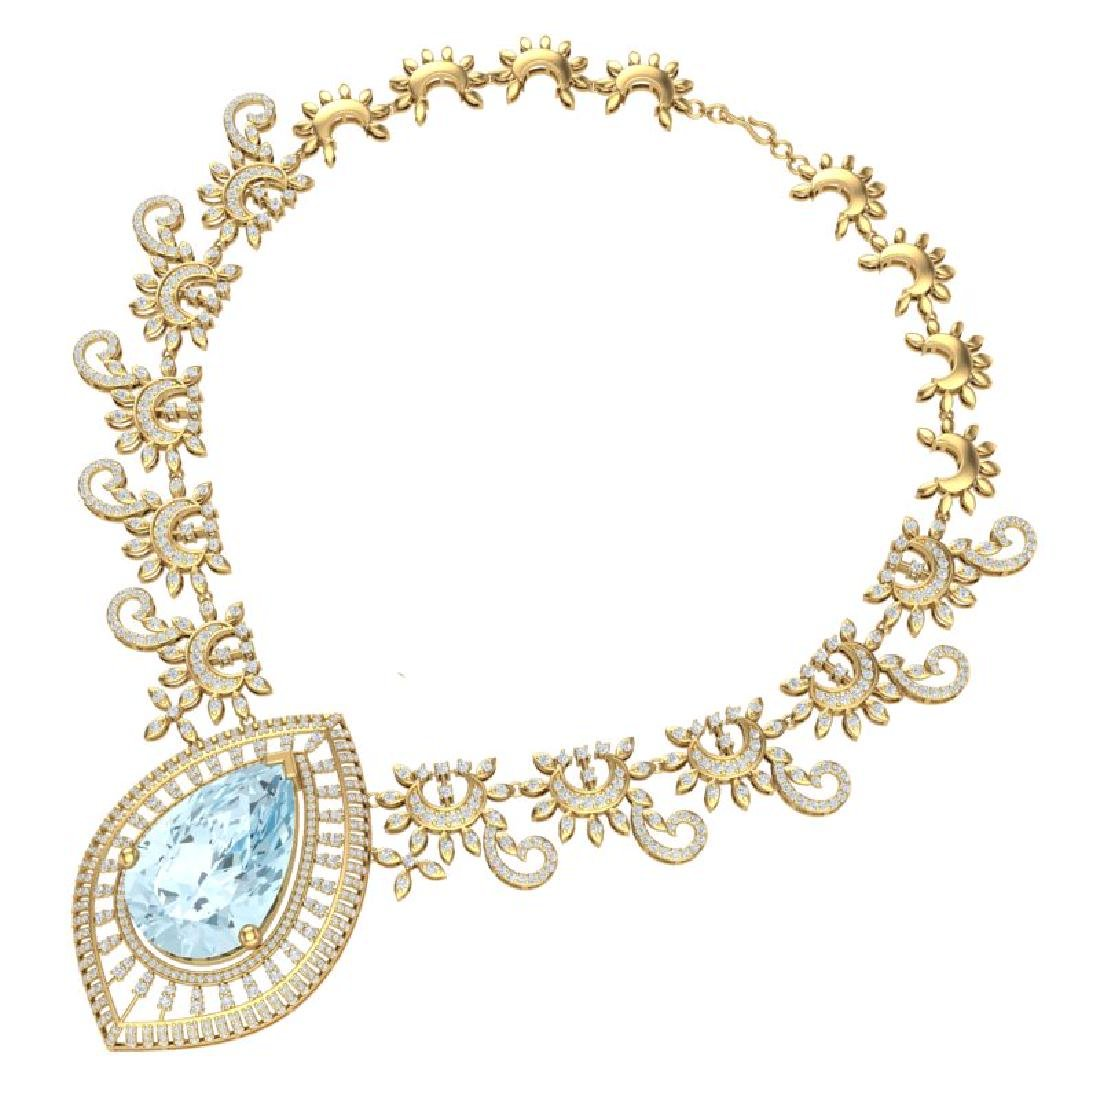 68.1 CTW Royalty Sky Topaz & VS Diamond Necklace 18K - 3